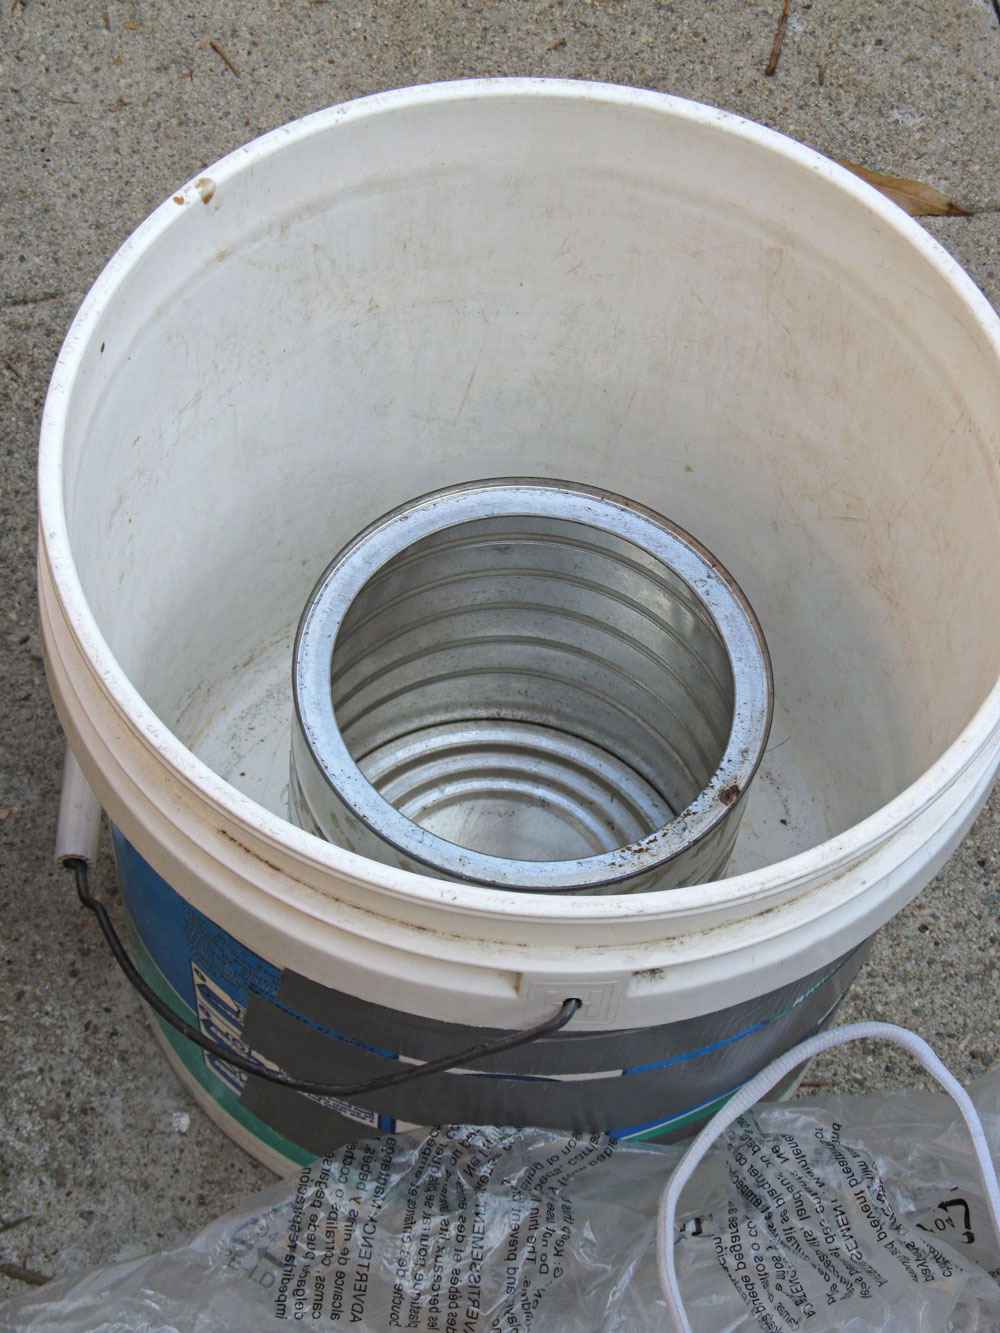 Put the can into the middle of the bucket.